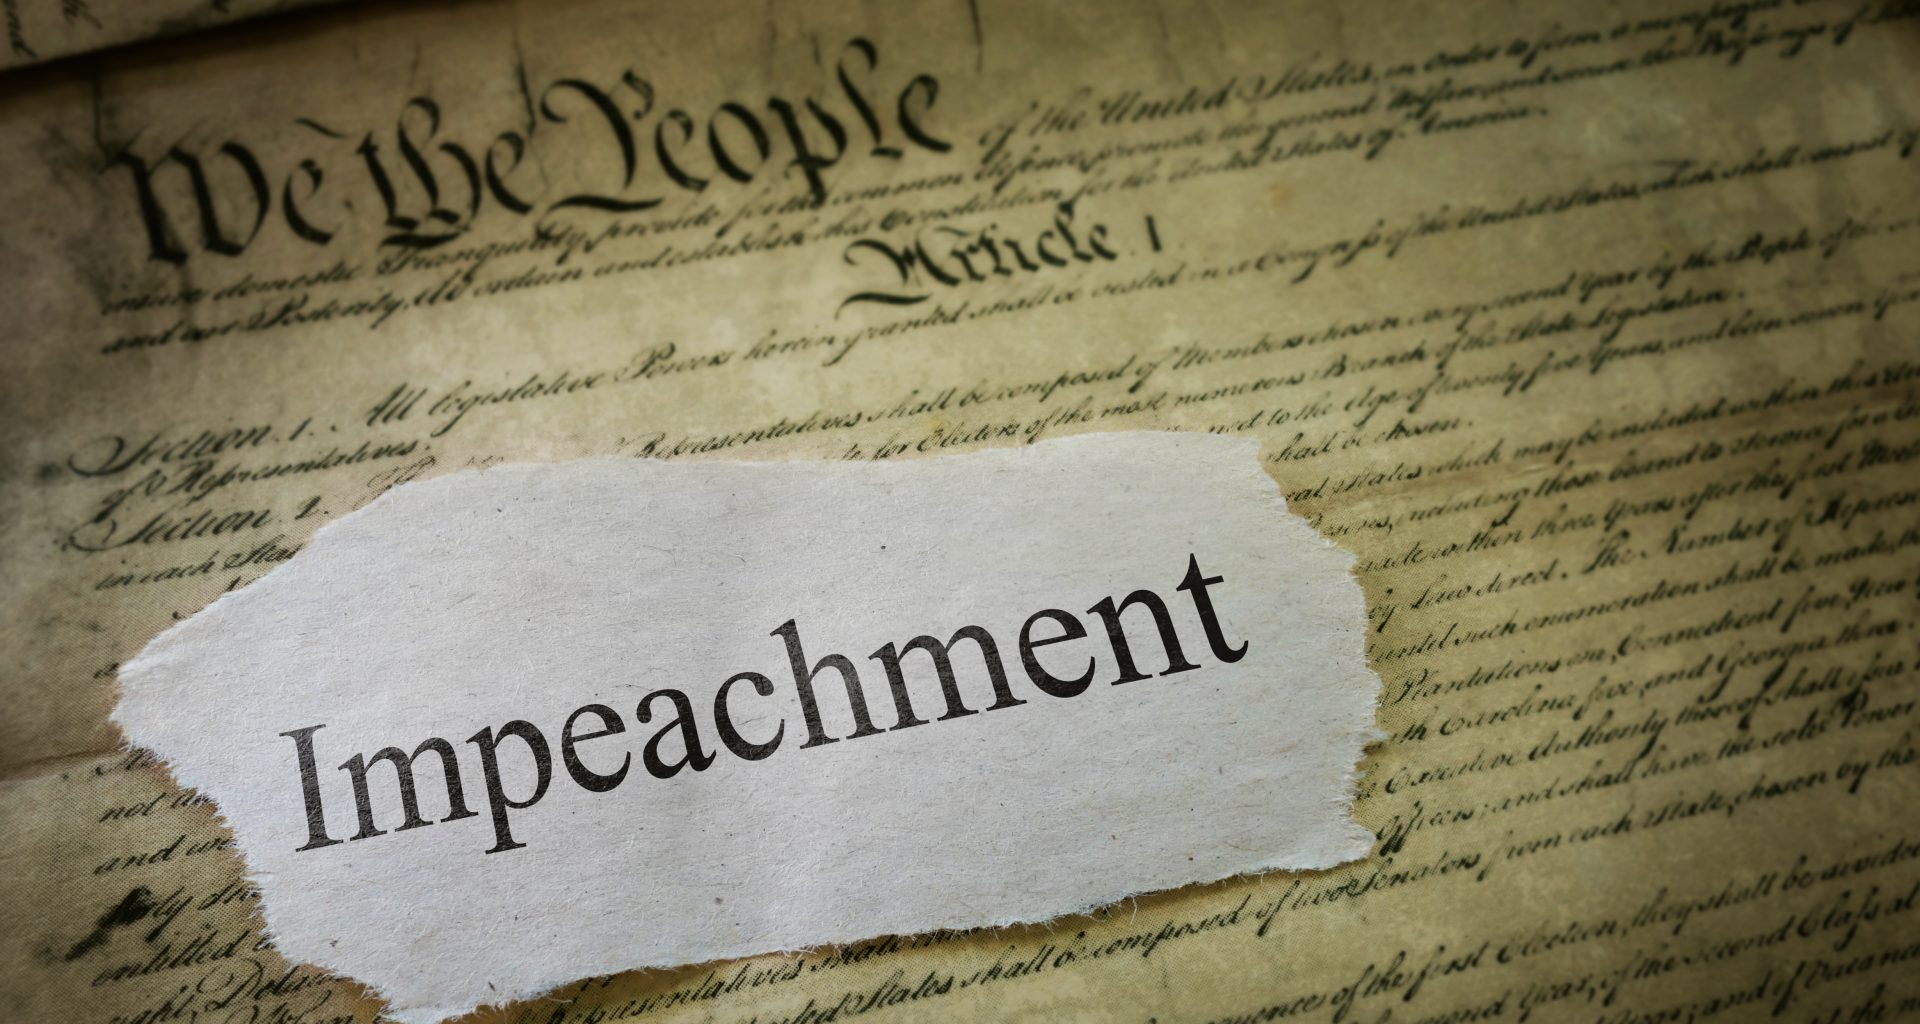 New Articles of Impeachment Drawn Up